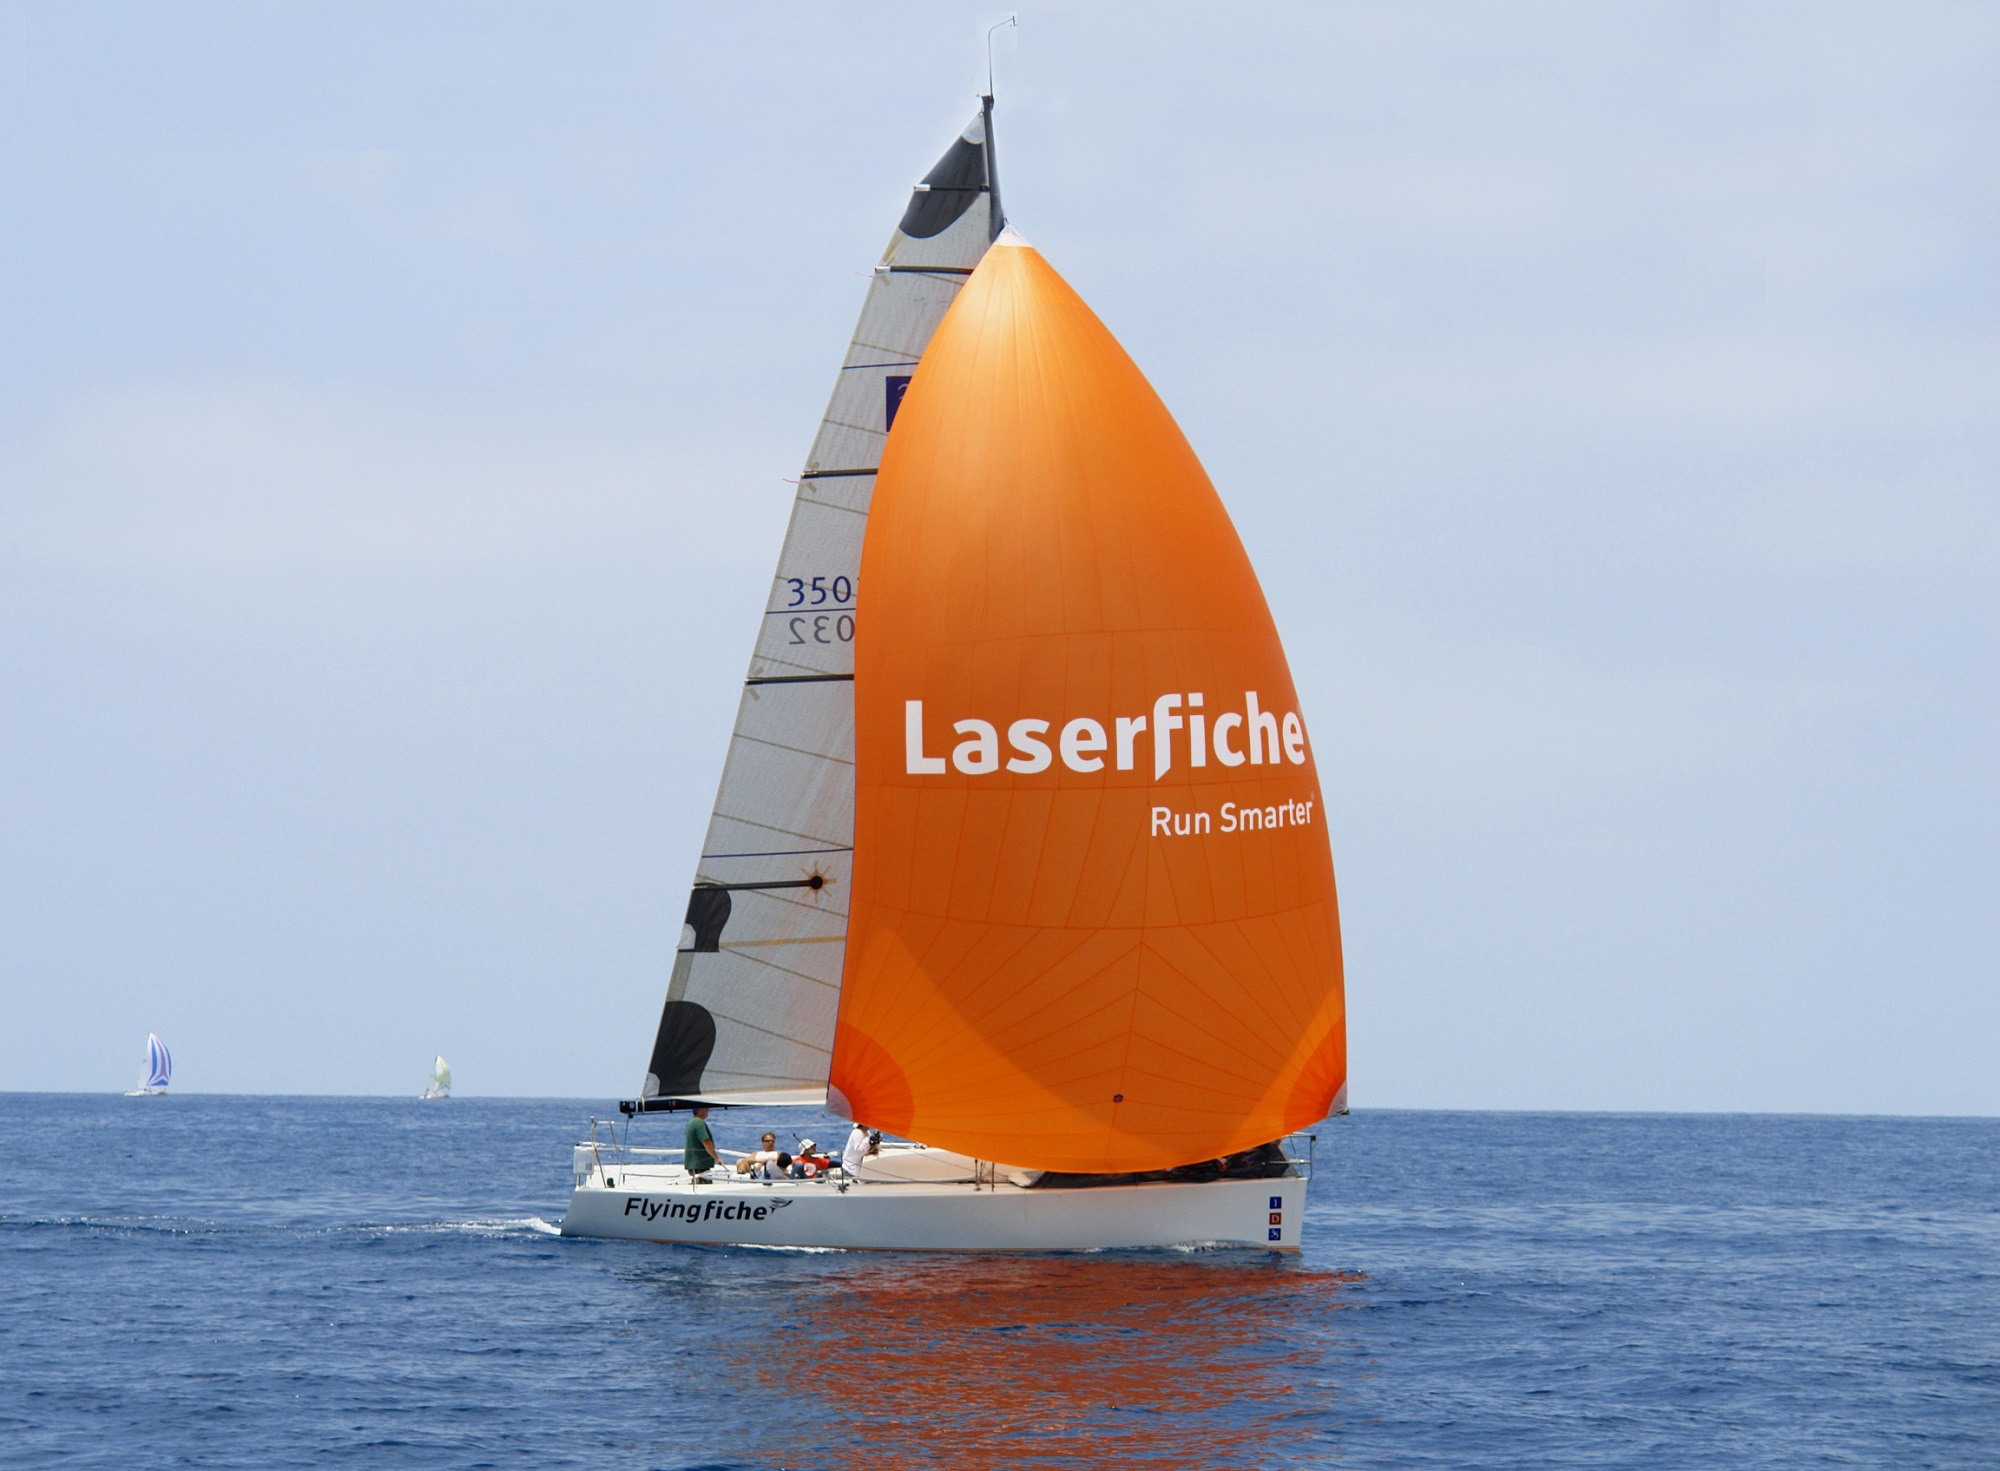 Laserfiche Flying Fiche